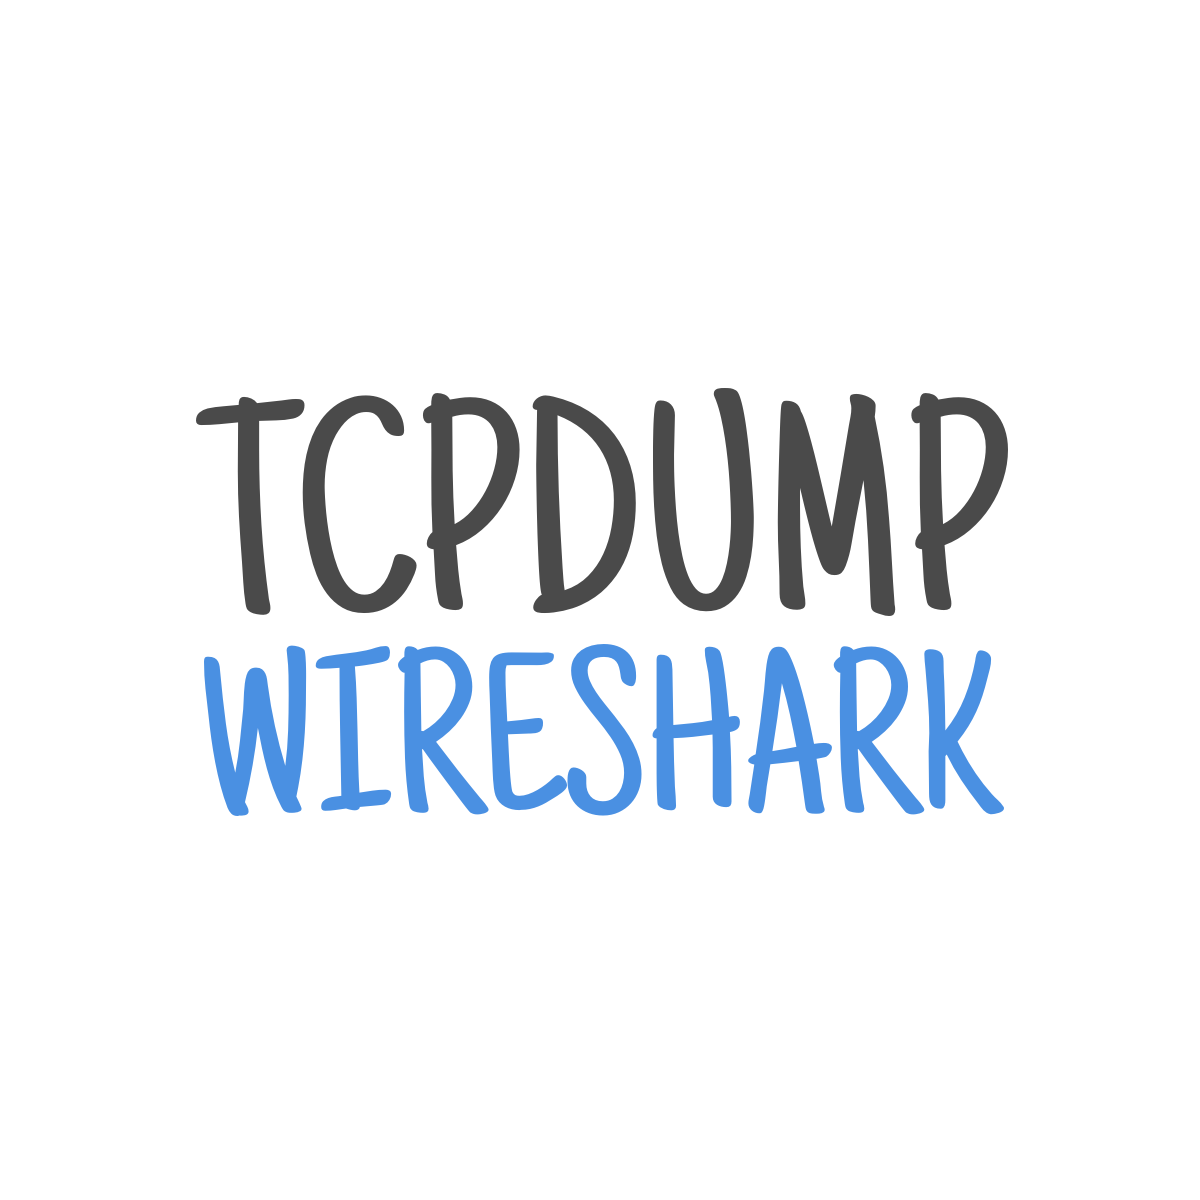 Analyzing Tcpdump capture in real-time with Wireshark | OpsTips